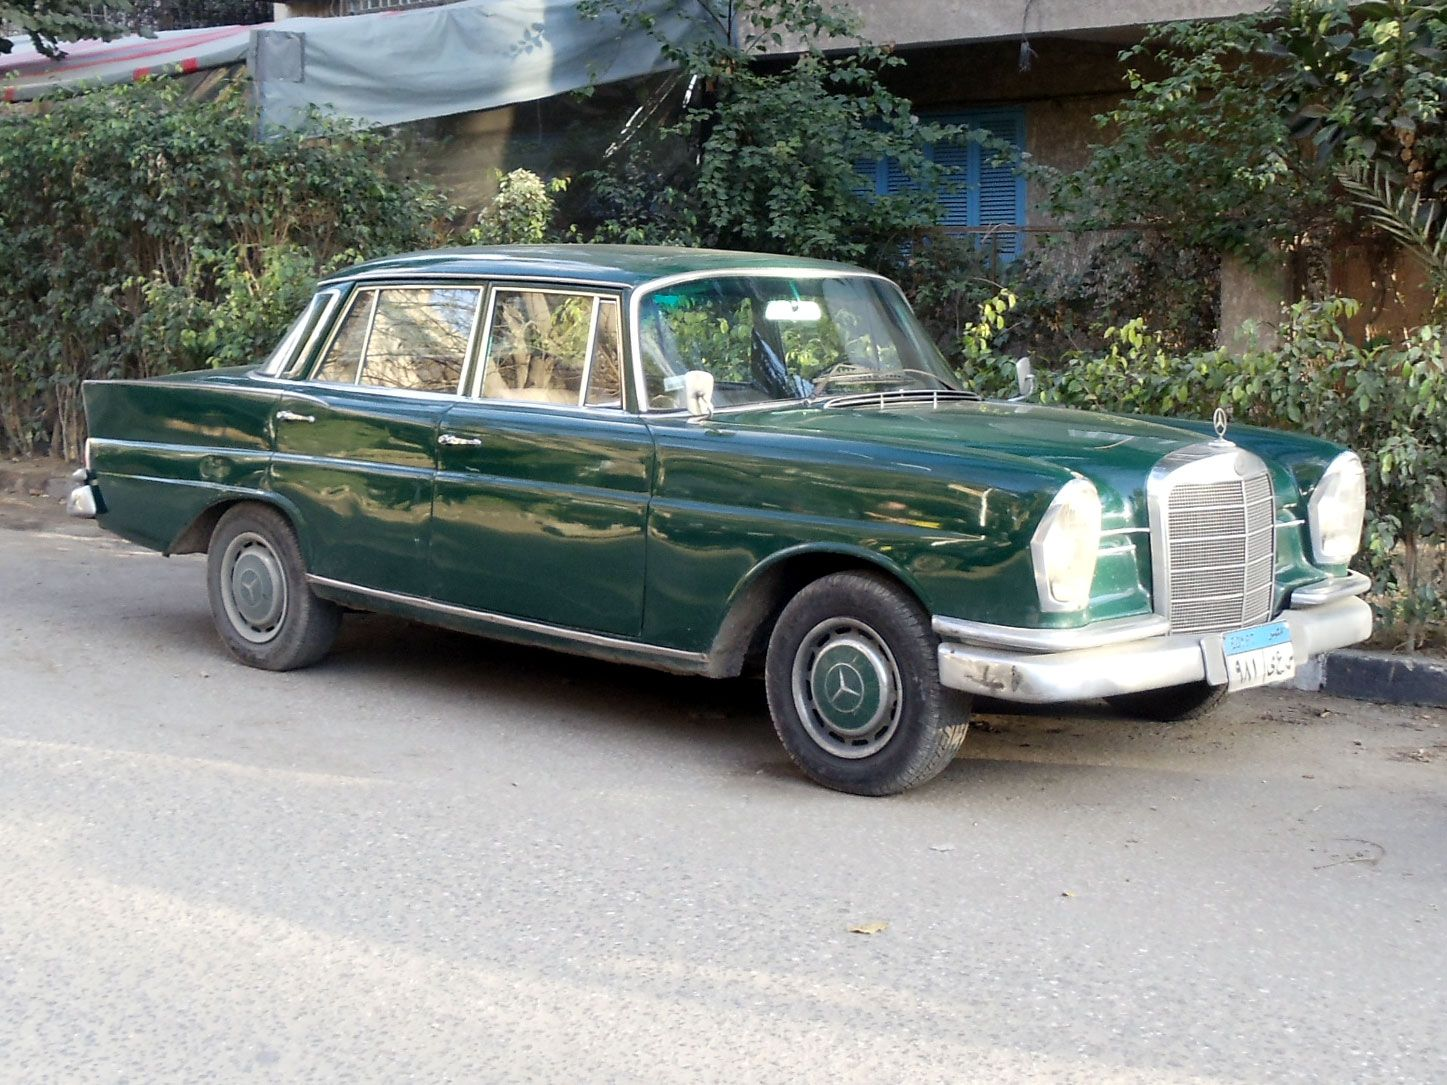 Vintage cars classic cars mercedes benz i spy egypt for Mercedes benz automobiles